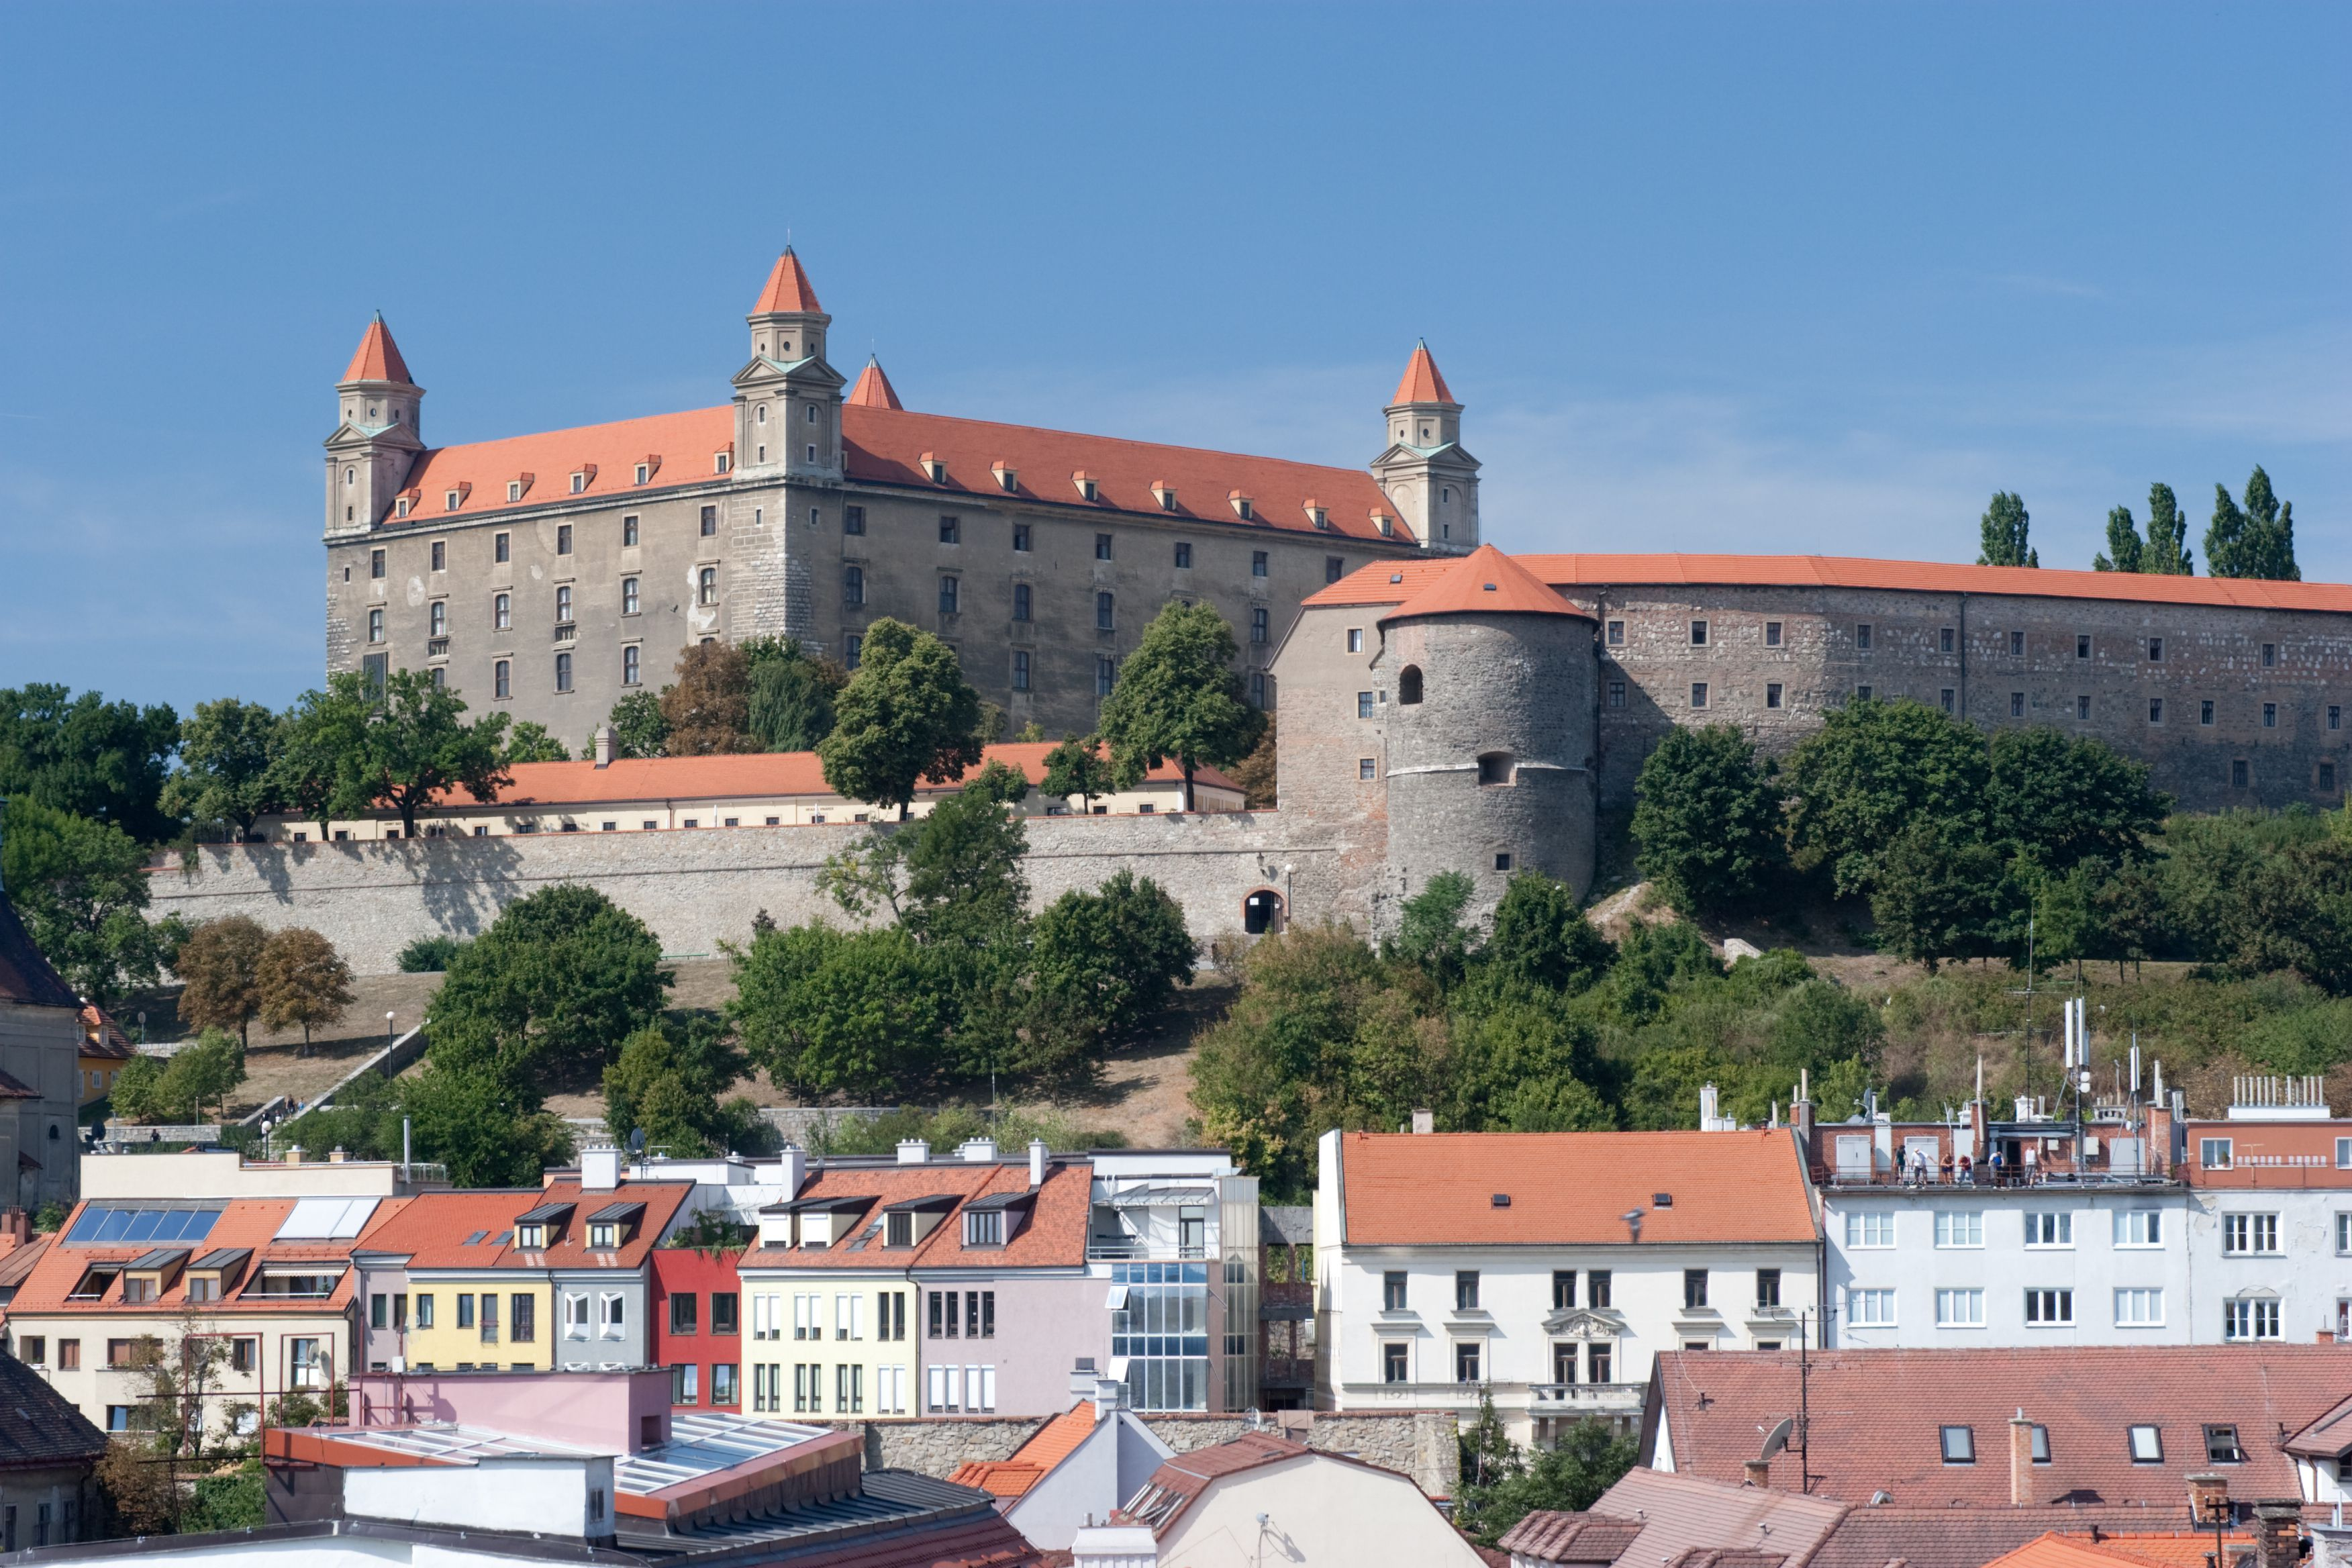 Bratislava Castle with new houses in front.